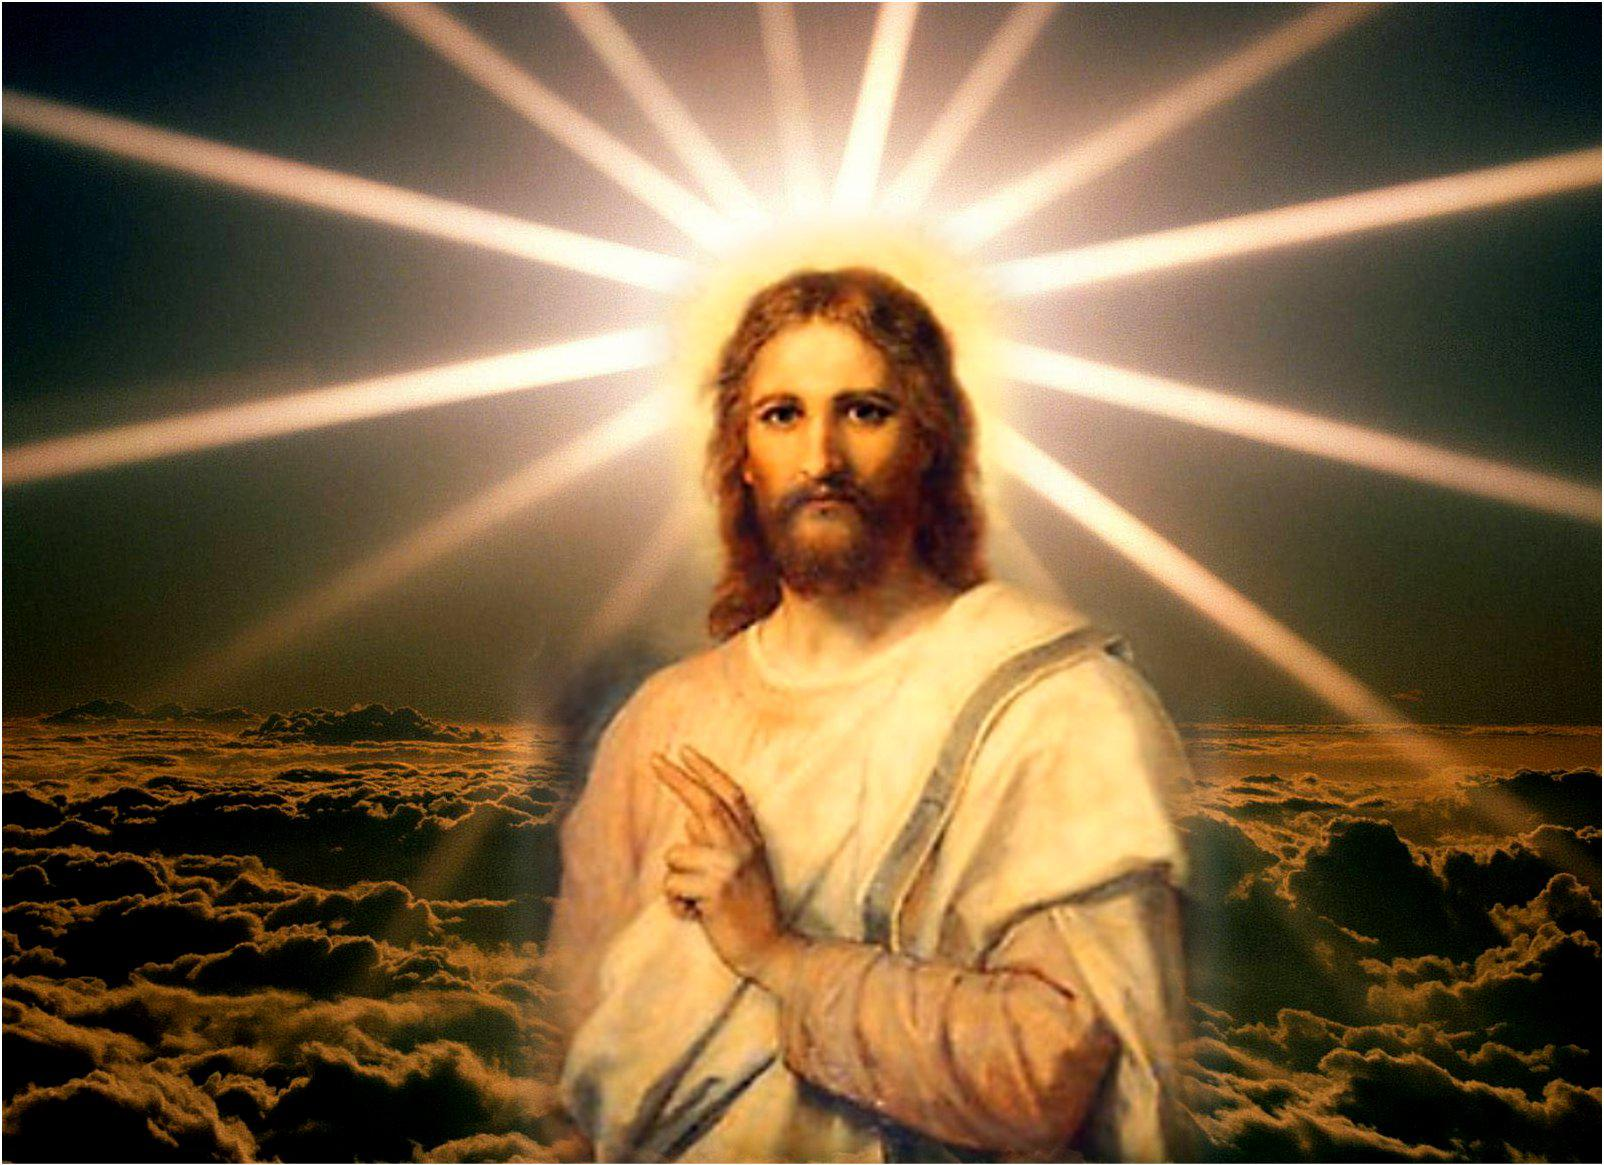 Jesus Pics Welcome friends! If you are here to simply gather Jesus pics and dont yet know the Lord why not see if you need Jesus in your life